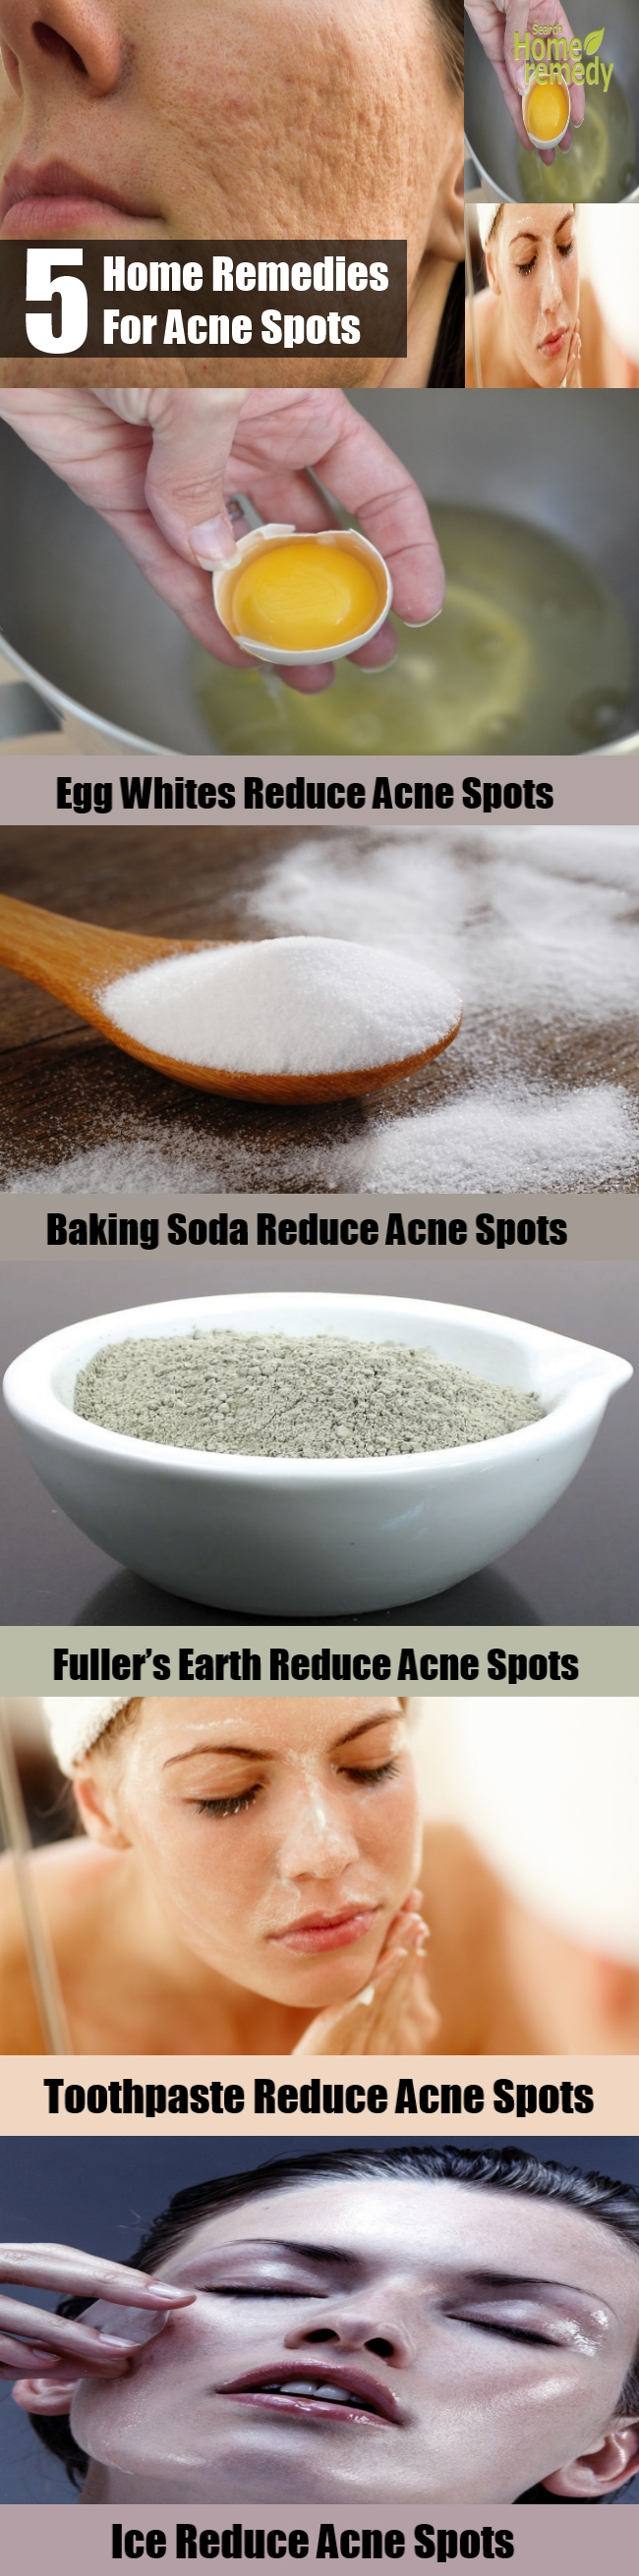 5 Simple Home Remedies For Acne Spots